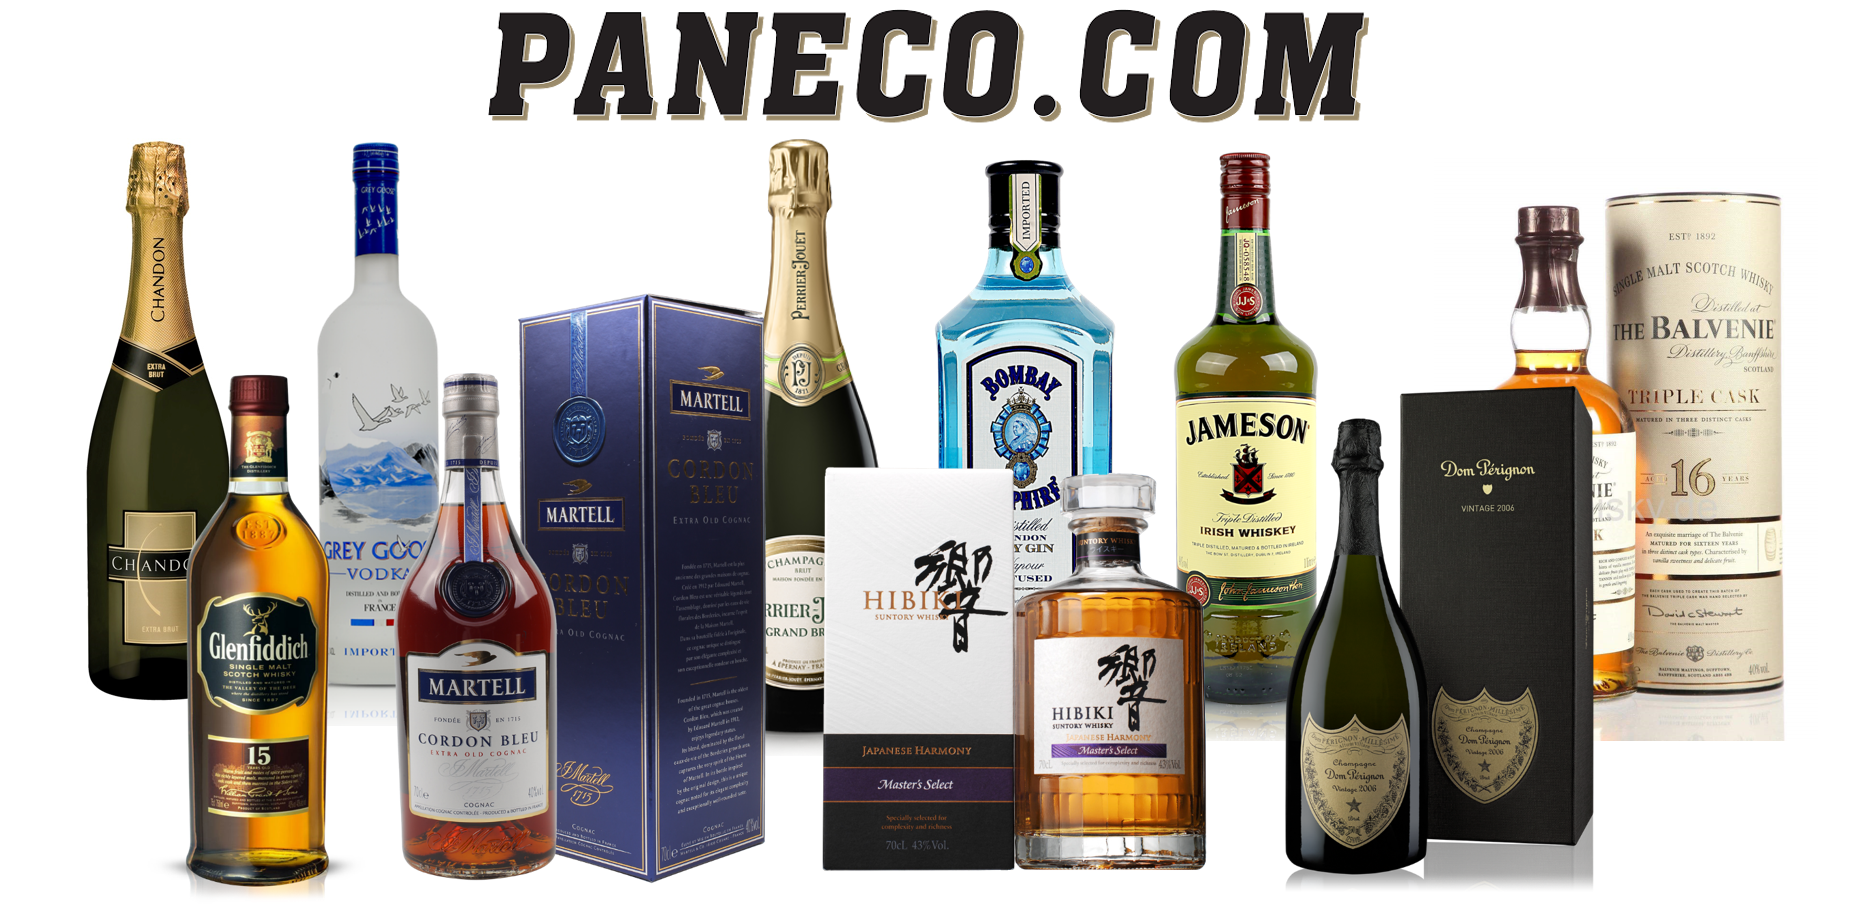 10 best online alcohol deals Singapore